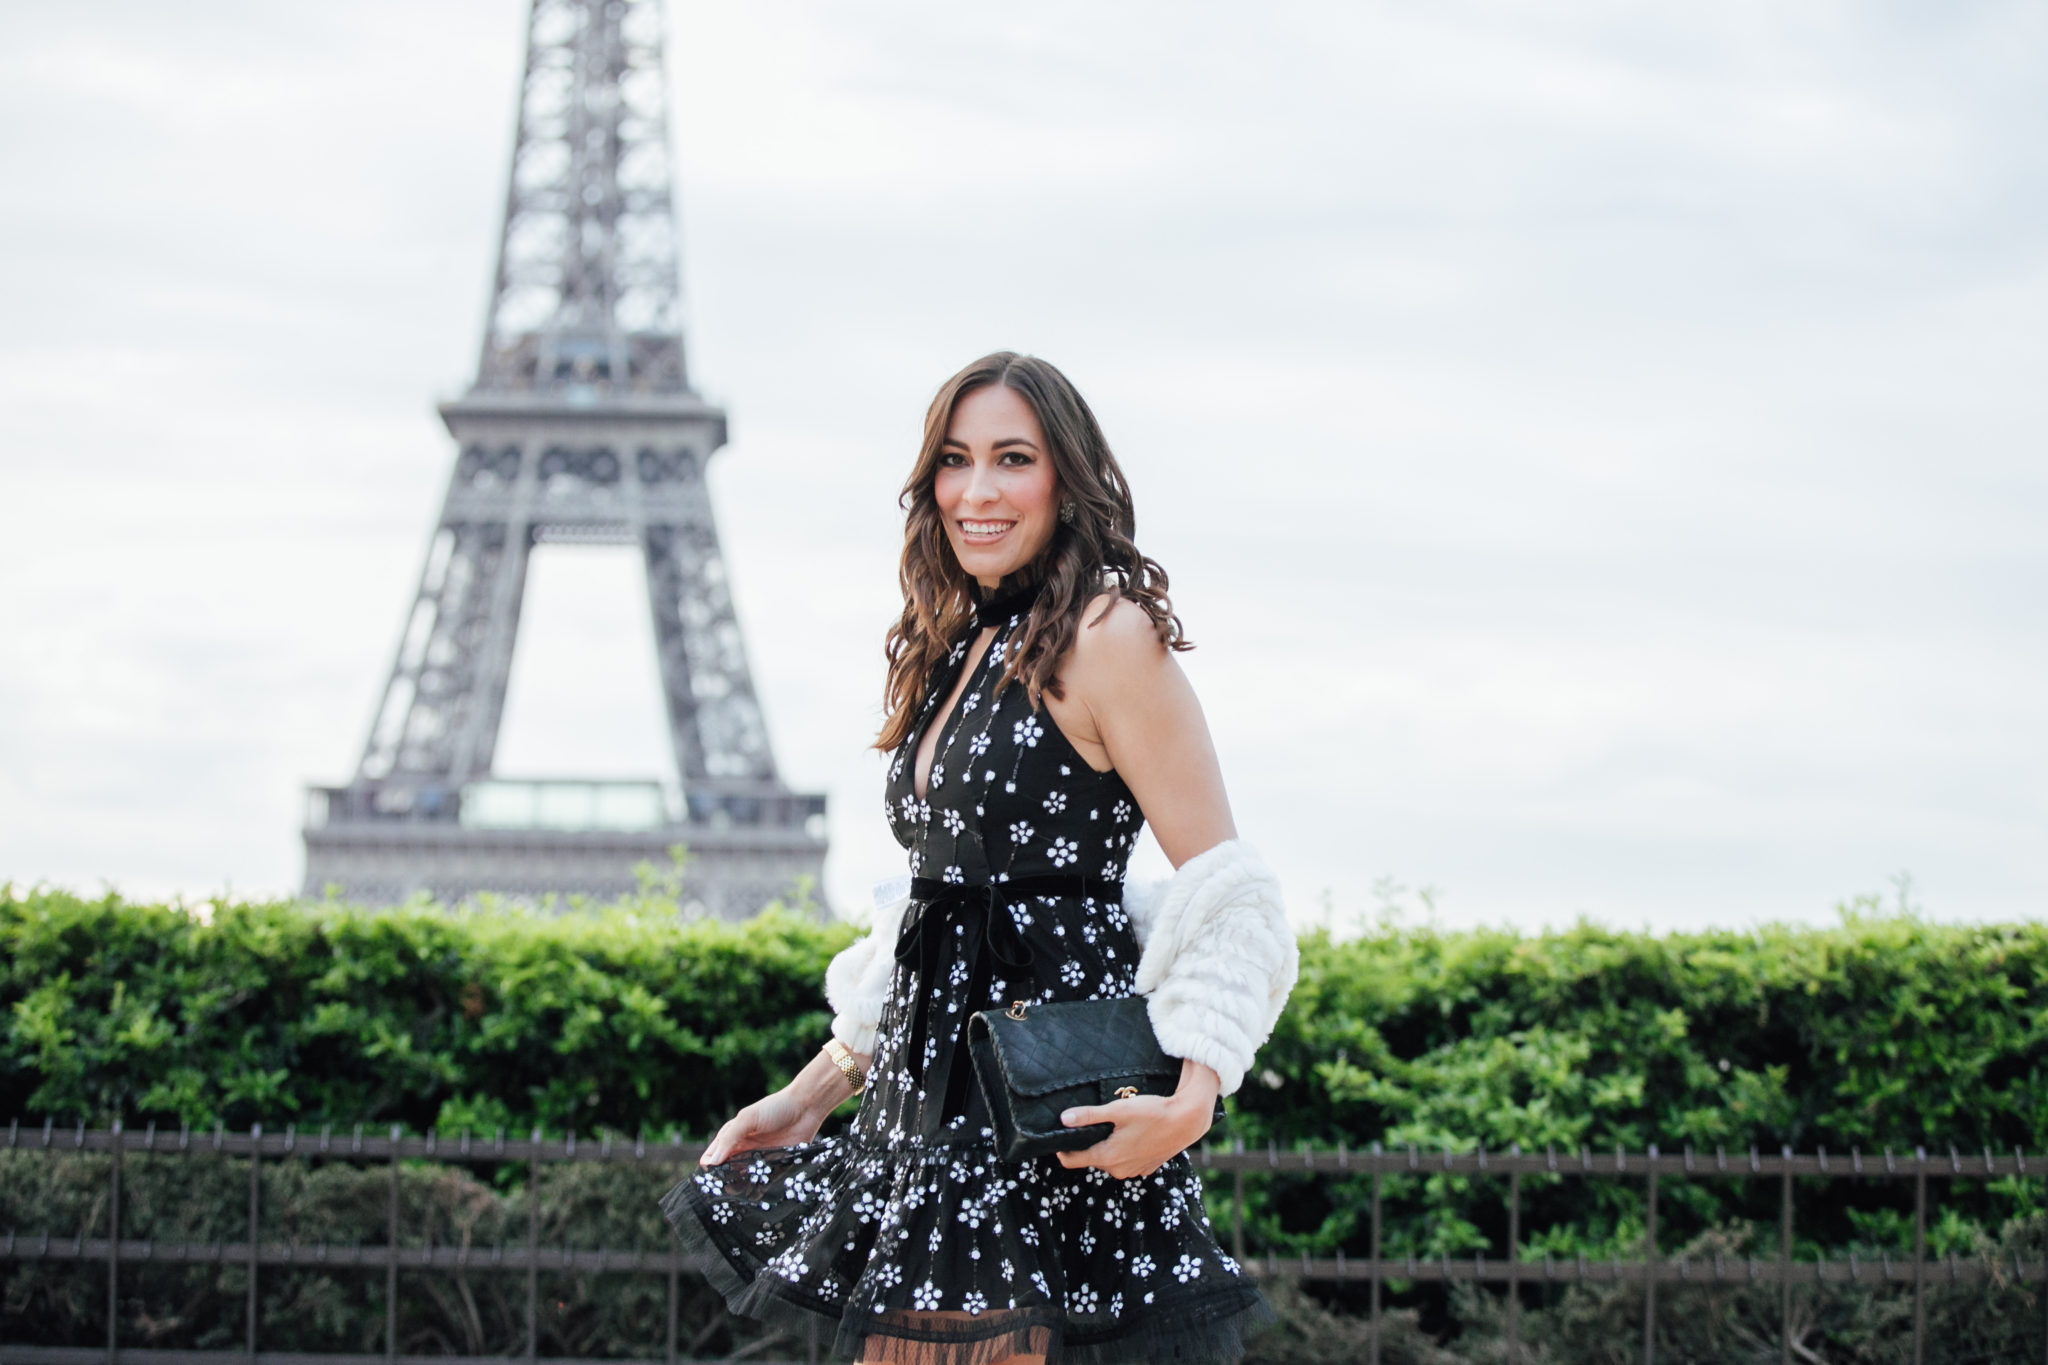 Alexis dresses are stunning for any event as shown by Amanda of A Glam Lifestyle blog in Paris at the Eiffel Tower